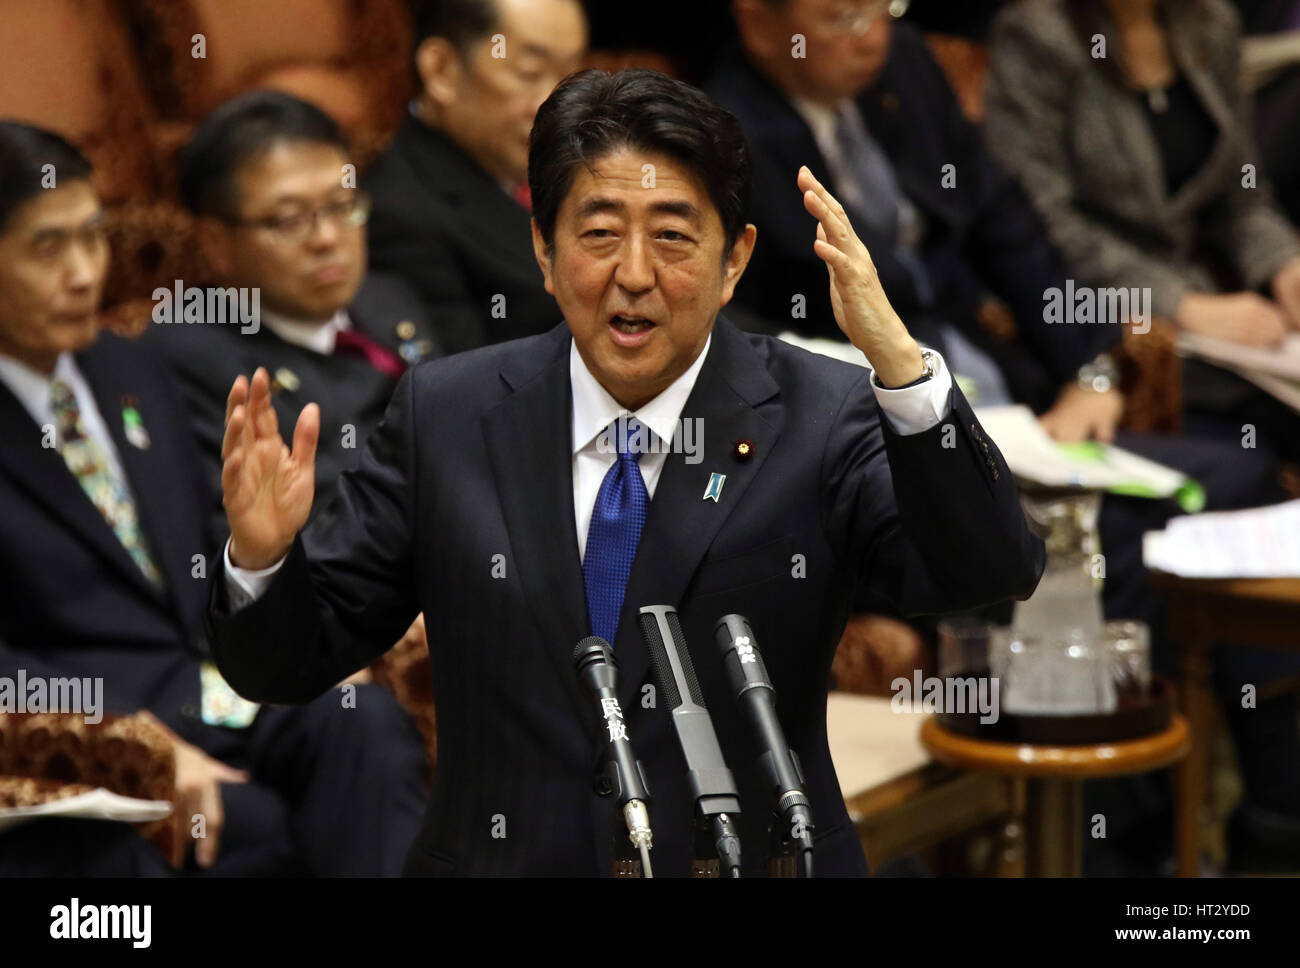 Tokyo, Japan. 6th Mar, 2017. Japanese Prime Minister Shinzo Abe answers a question by an opposition lawmaker at - Stock Image